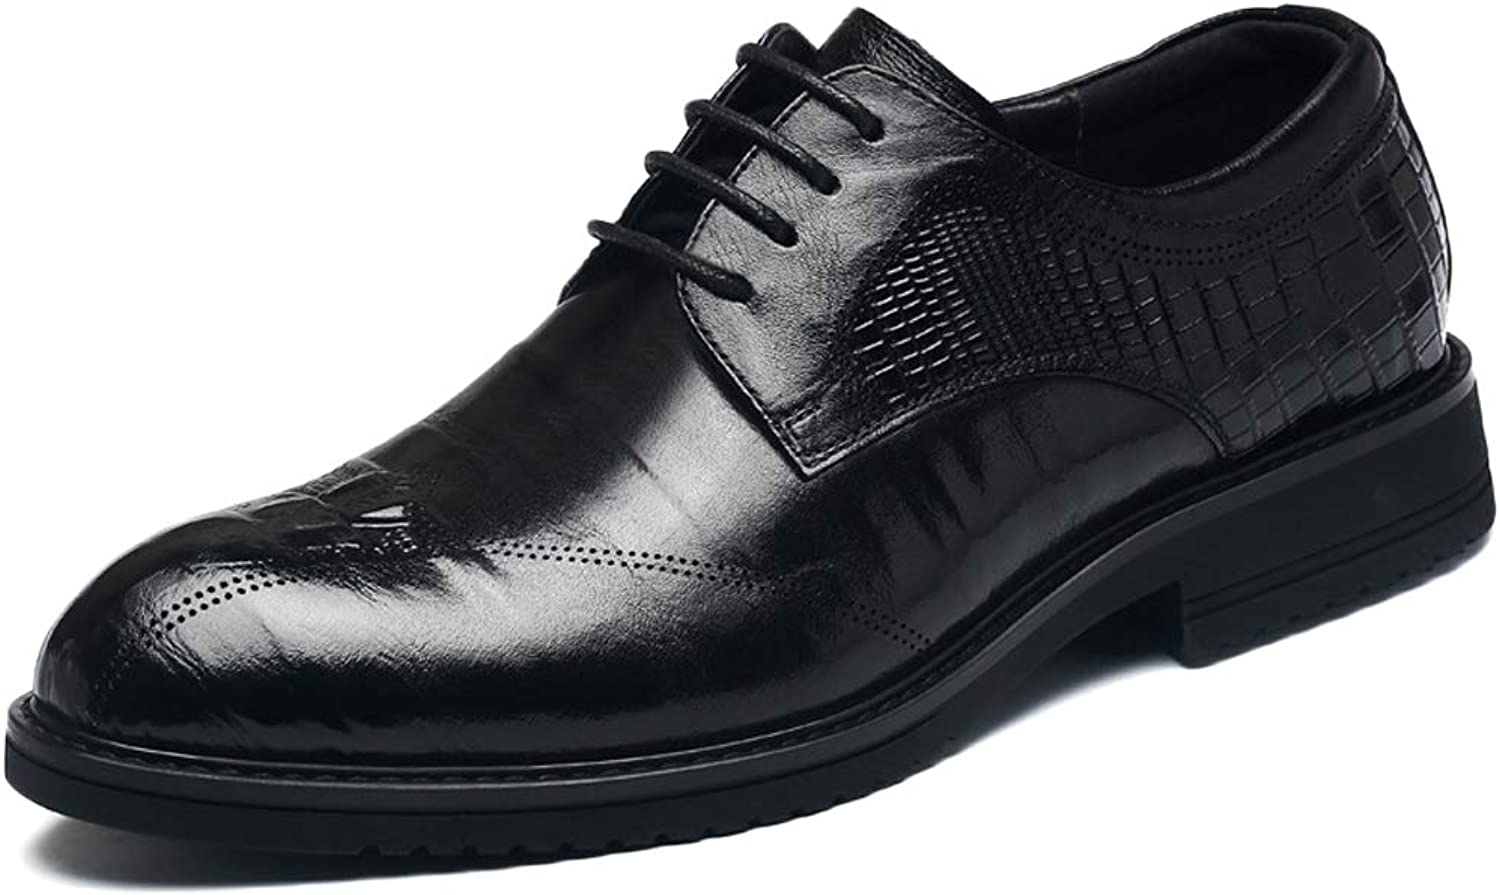 GanSouy Men's Business Casual Black Leather Lace-Up shoes Vintage Office Red Work Derby Smart Formal Wedding Dress Brogue Oxfords Low-top shoes